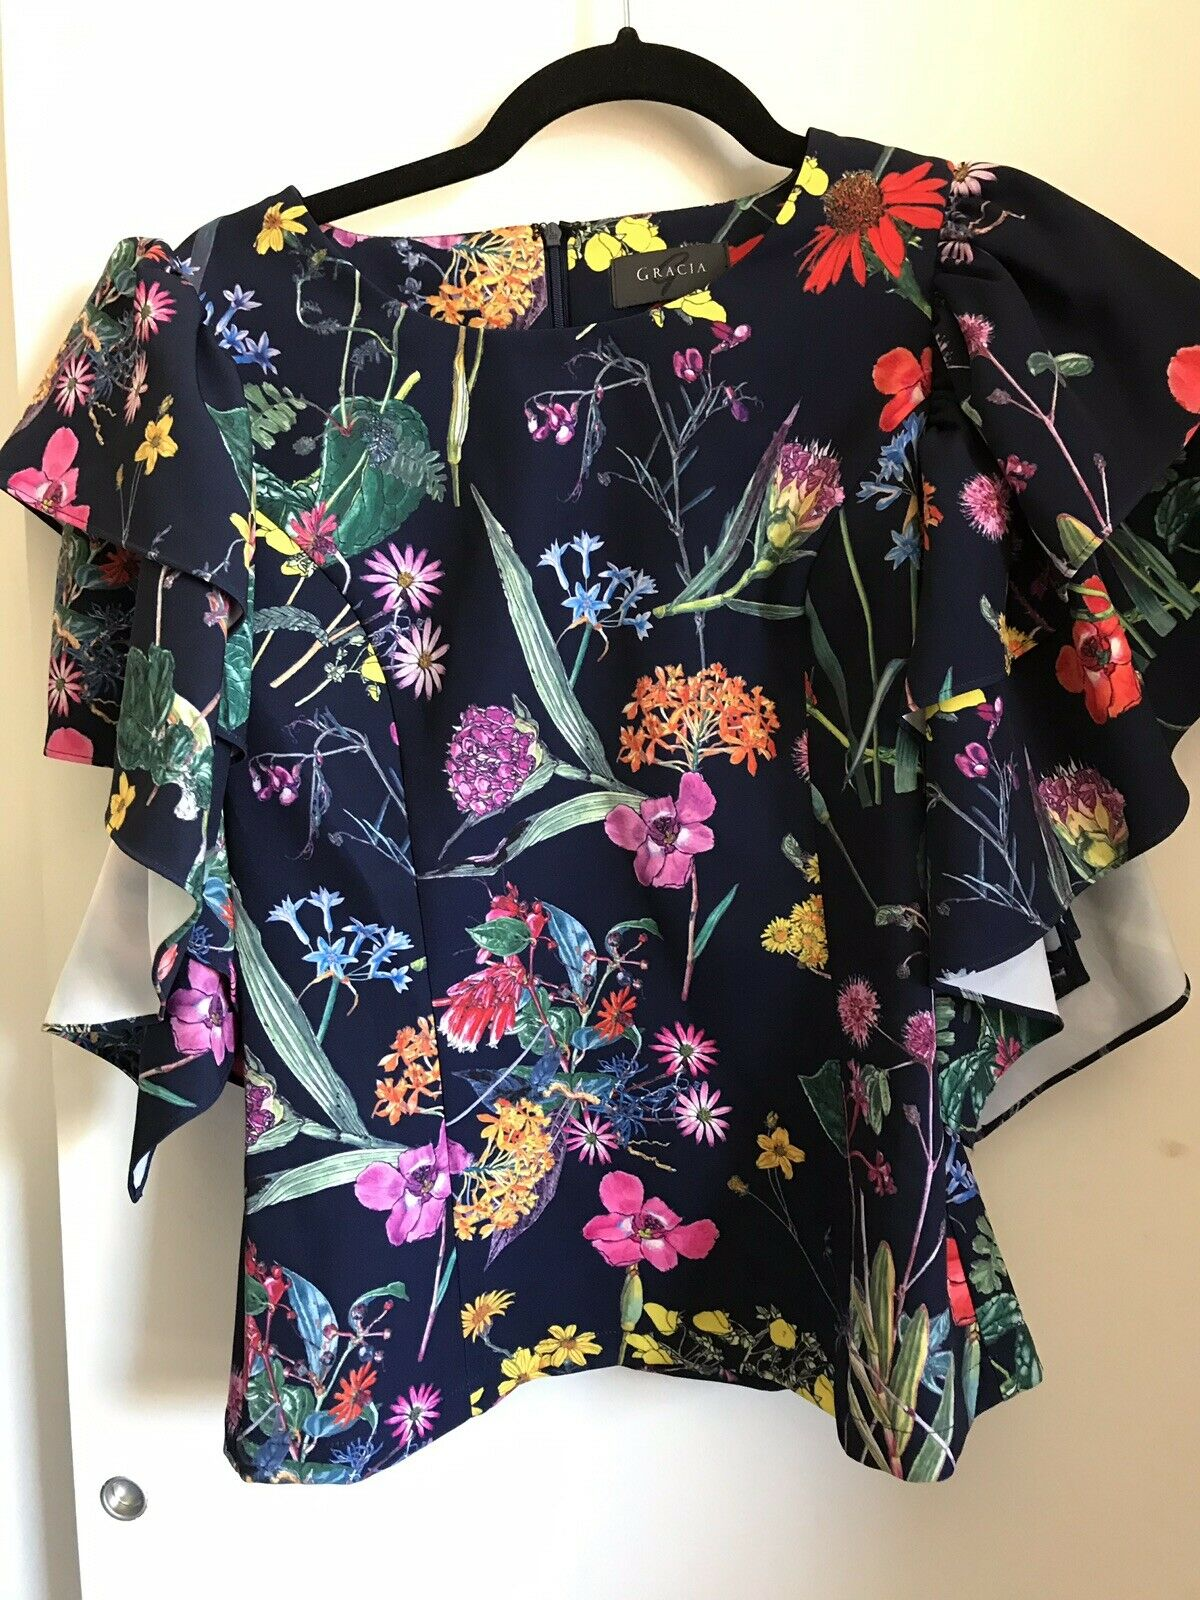 NWT! GRACIA Floral Navy W/ Statment Sleeves Small Msrp $109